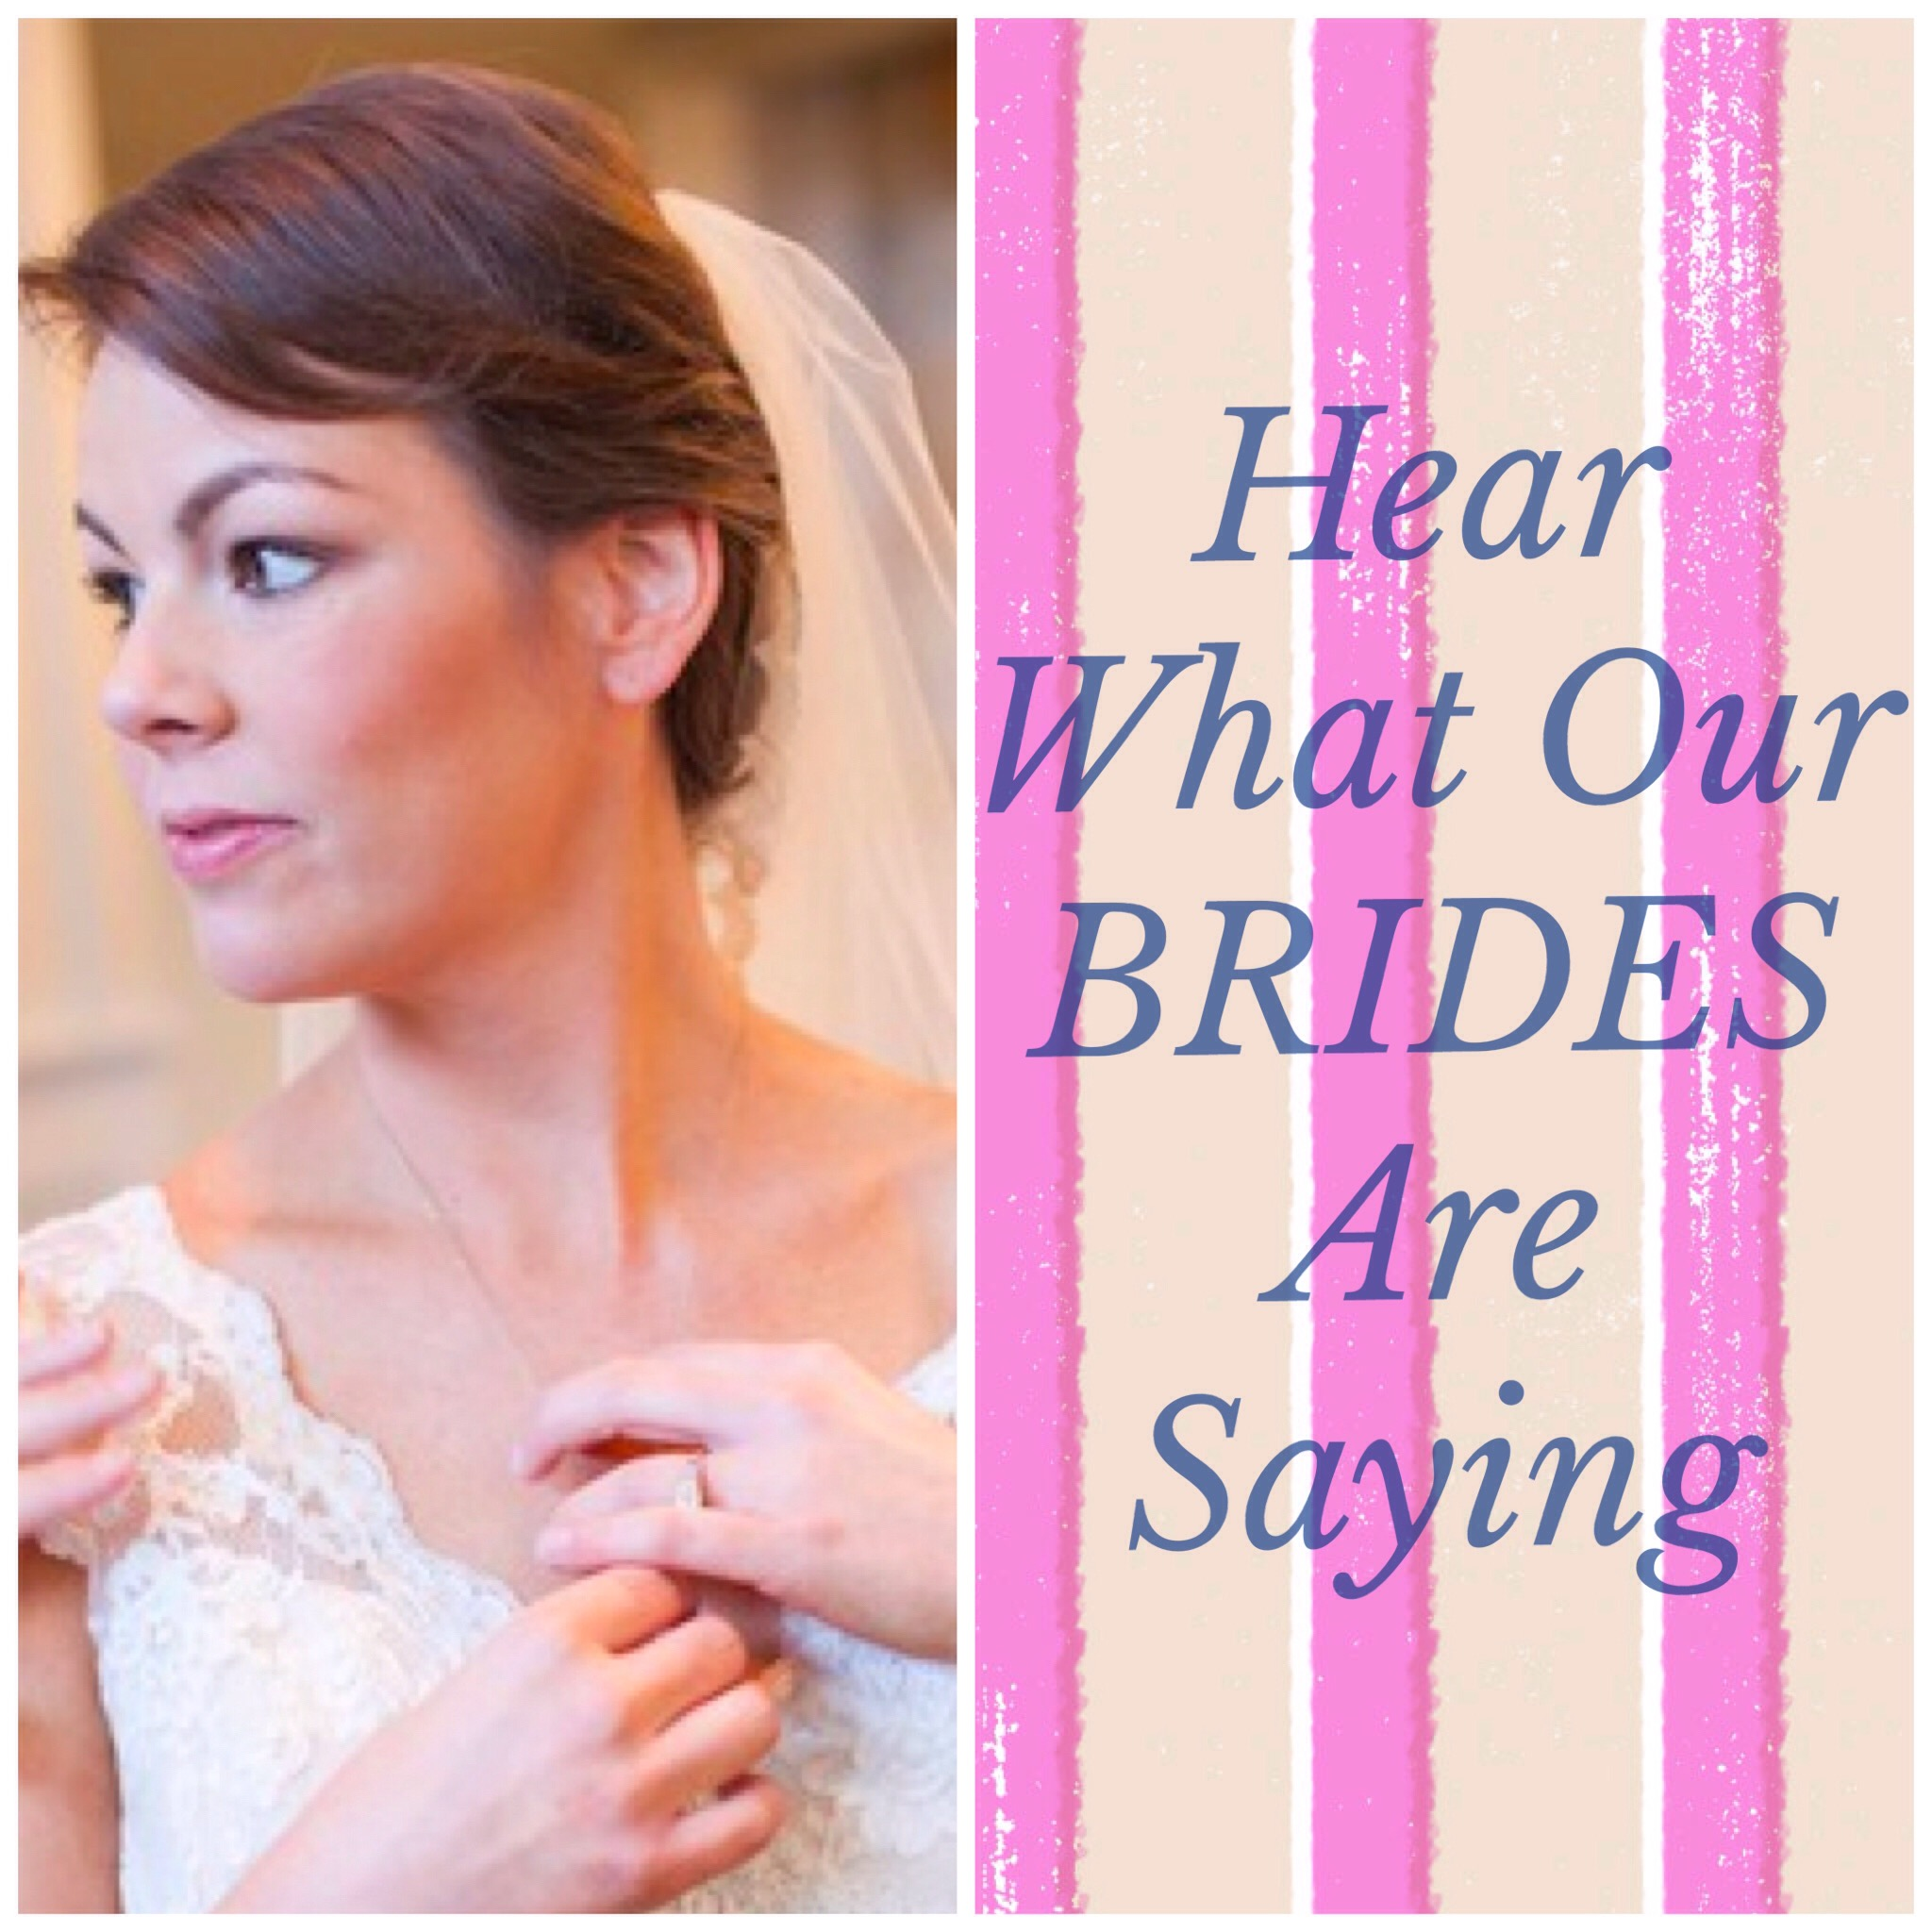 hearwhatourbridesaresaying